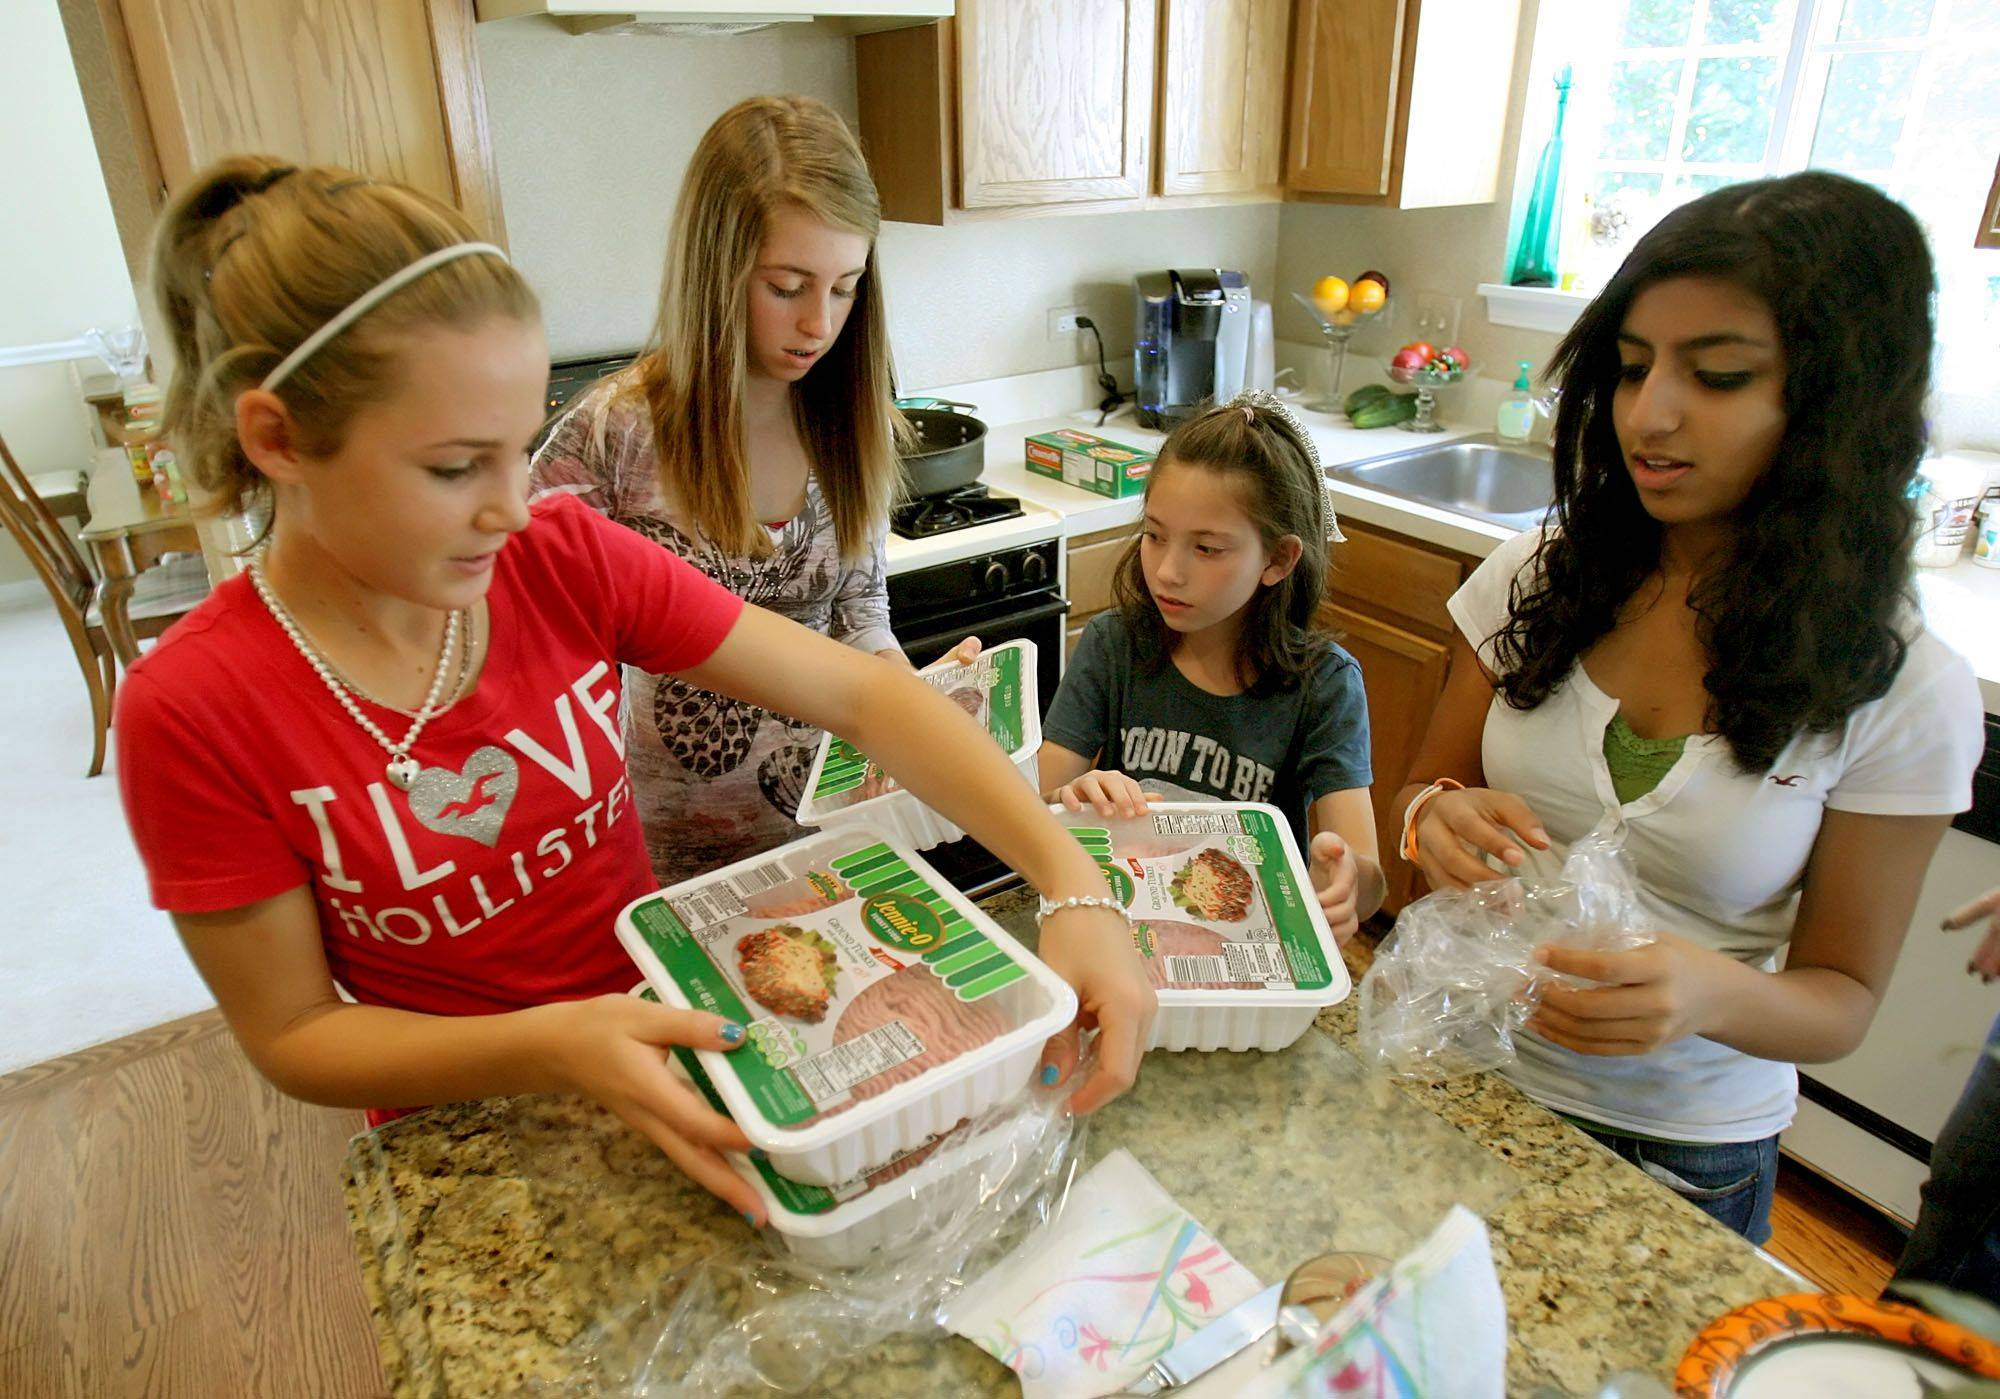 Alison Deluca, 13, left, Jessica Schwartz 13, Peyton Friedlander, 9, and Diya Verma, 13, all of Gurnee, prepare lasagna for the two Gurnee fire departments and one Gurnee police department for their charity called Cheers for Heros.